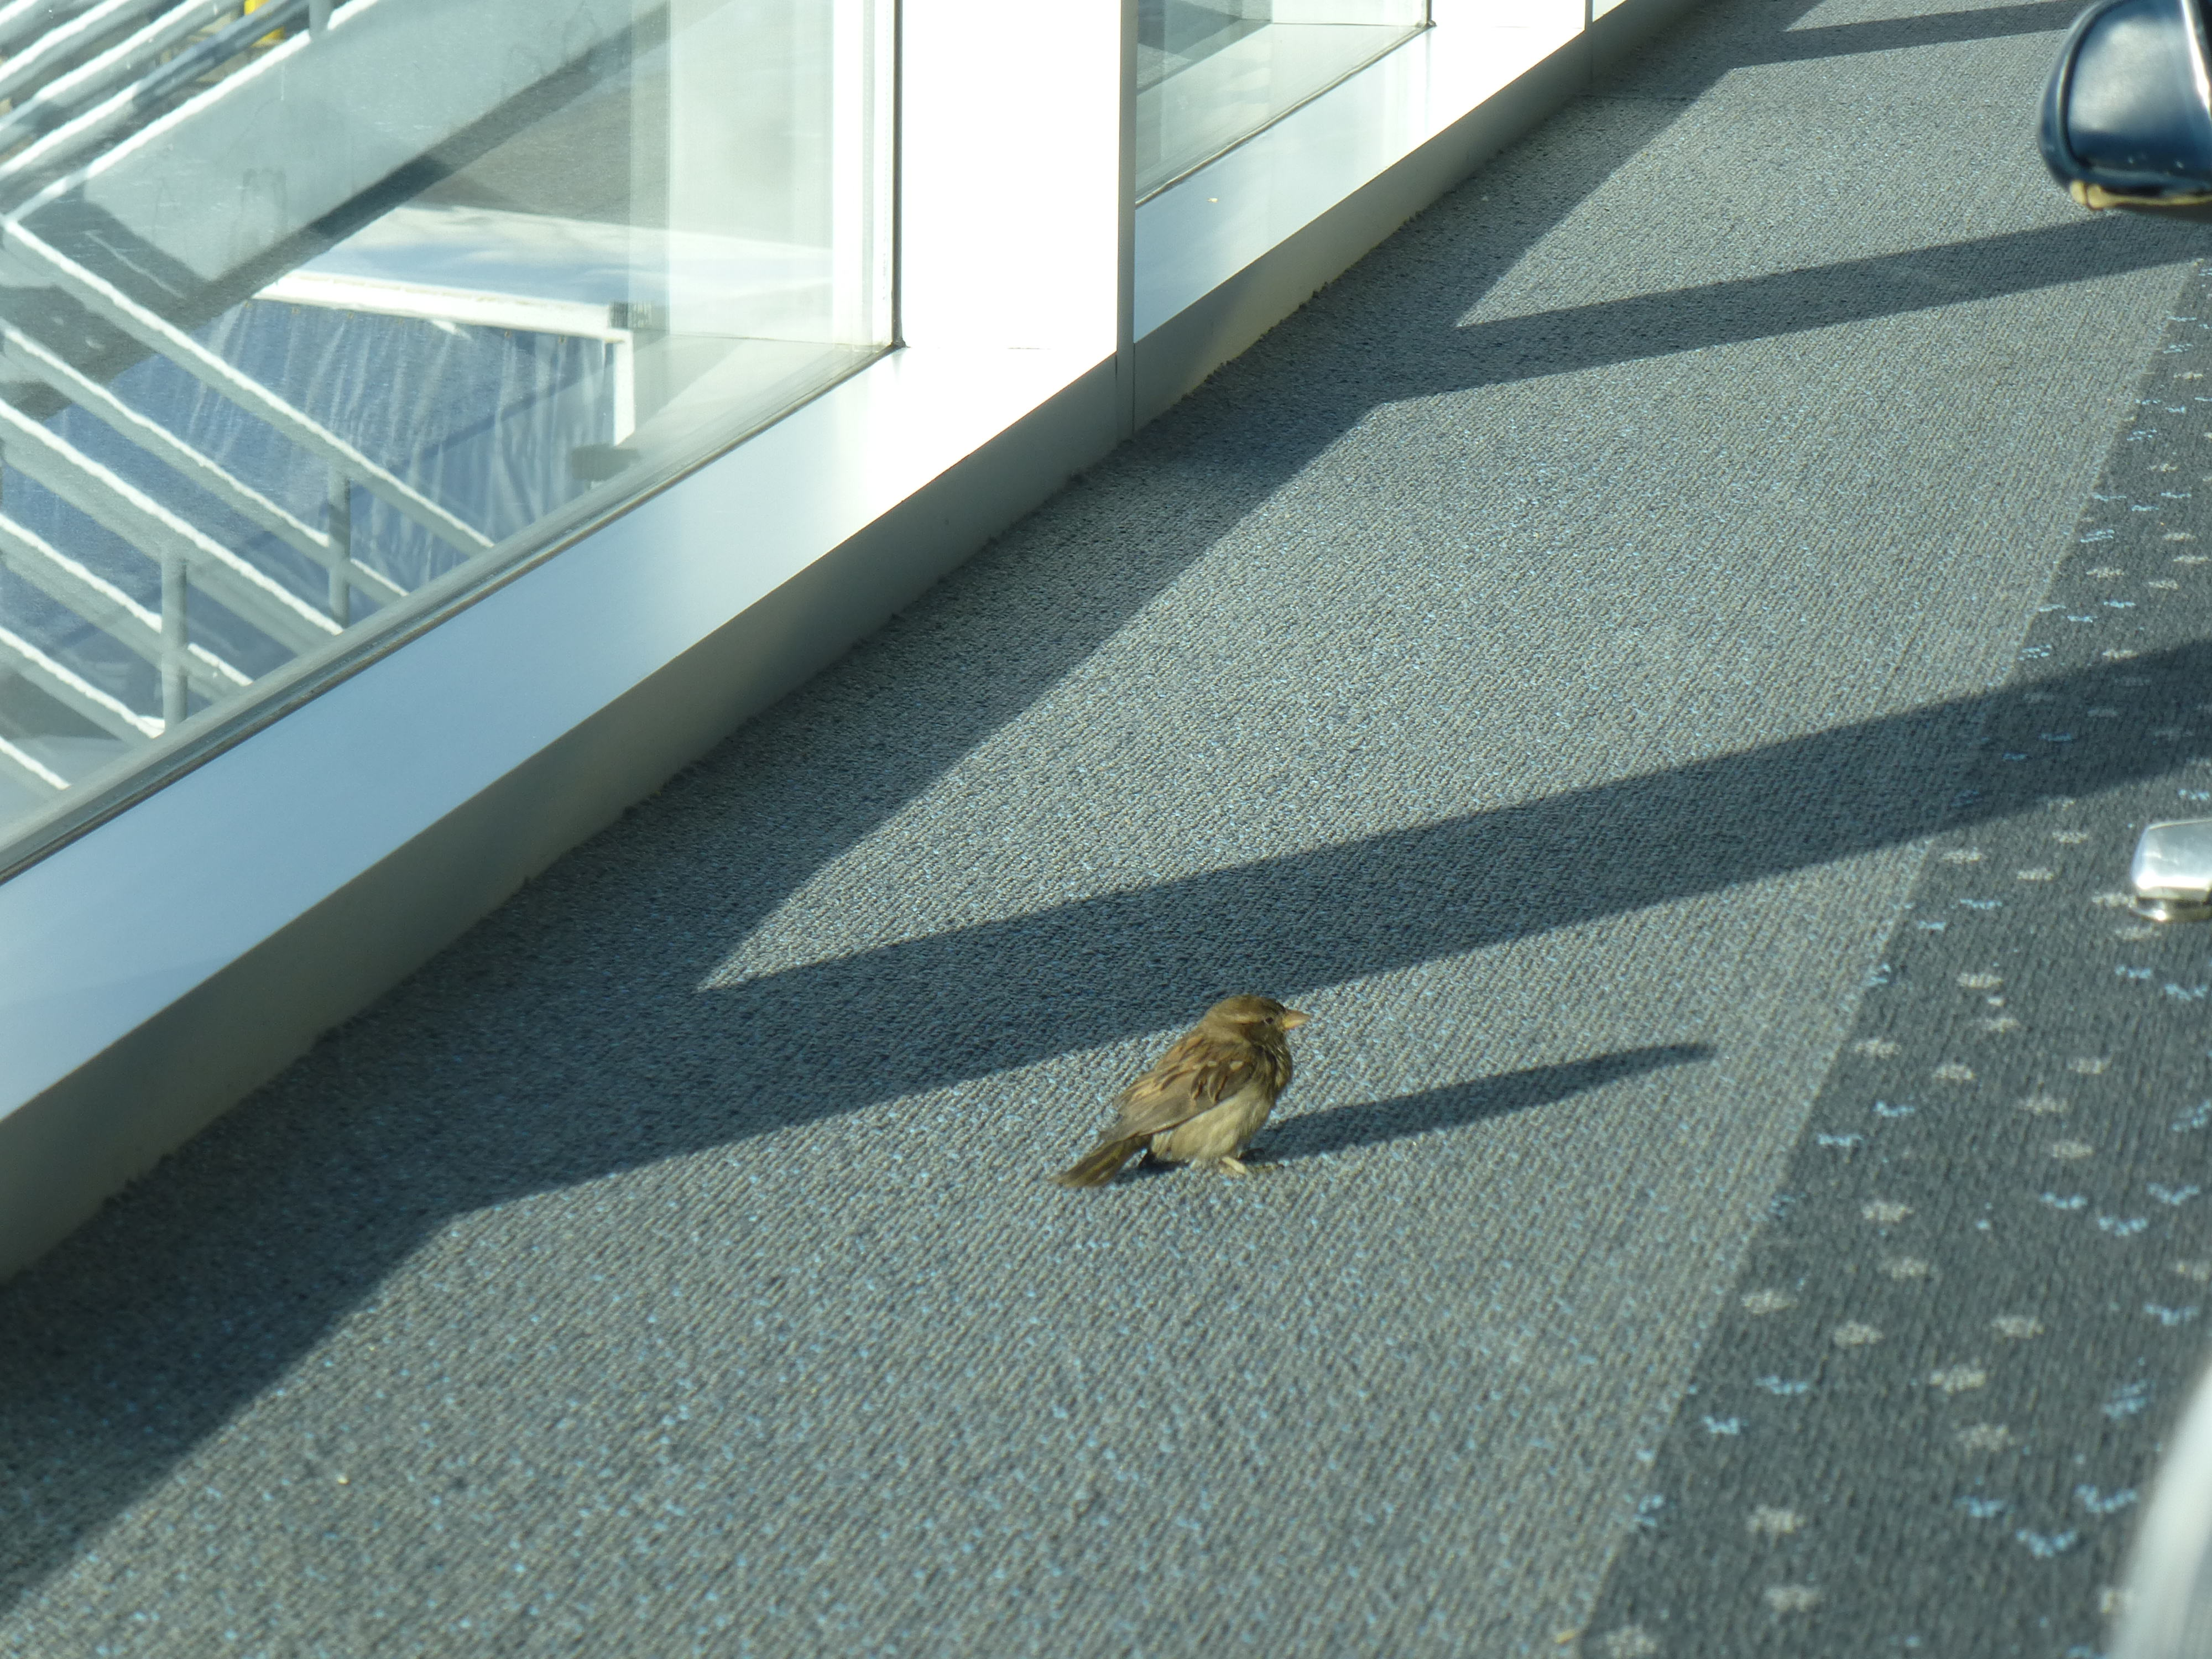 A sparrow hanging out in the Denver Airport.